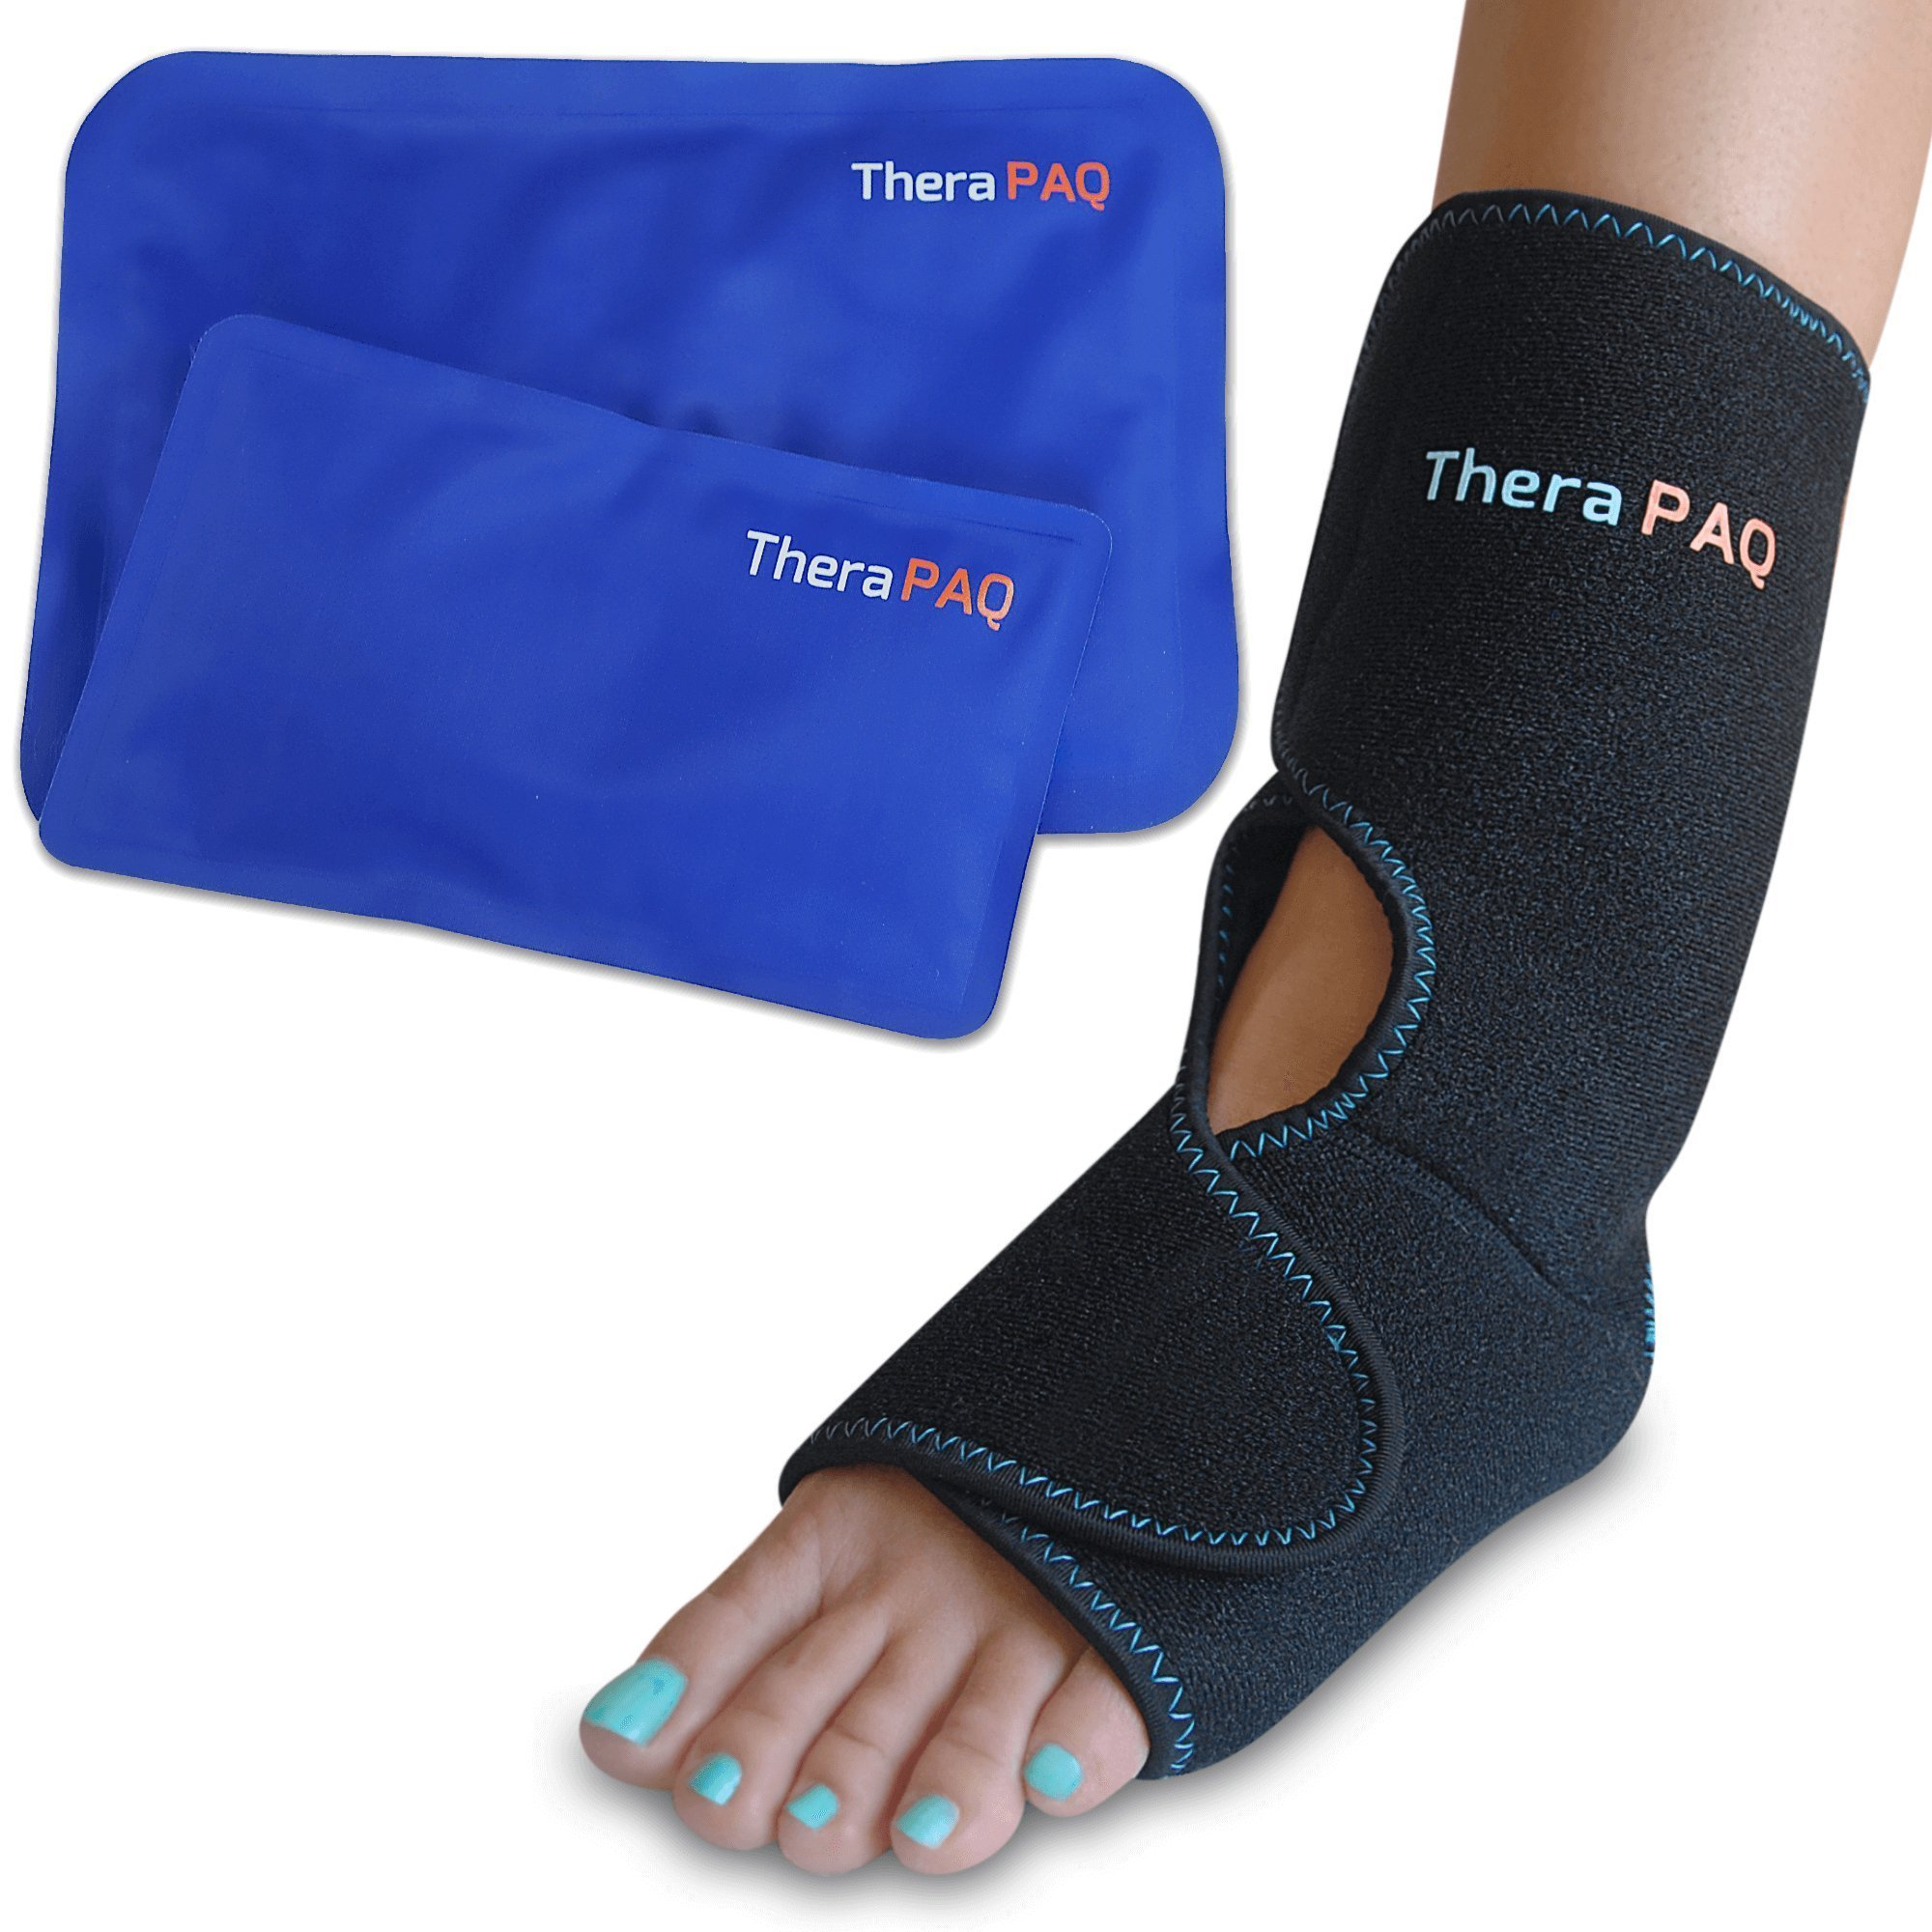 Foot & Ankle Pain Relief Ice Wrap with 2 Hot / Cold Gel Packs by TheraPAQ | Best for Achilles Tendon Injuries, Plantar Fasciitis, Bursitis & Sore Feet | Microwaveable, Freezable and Reusable (XS-XL)